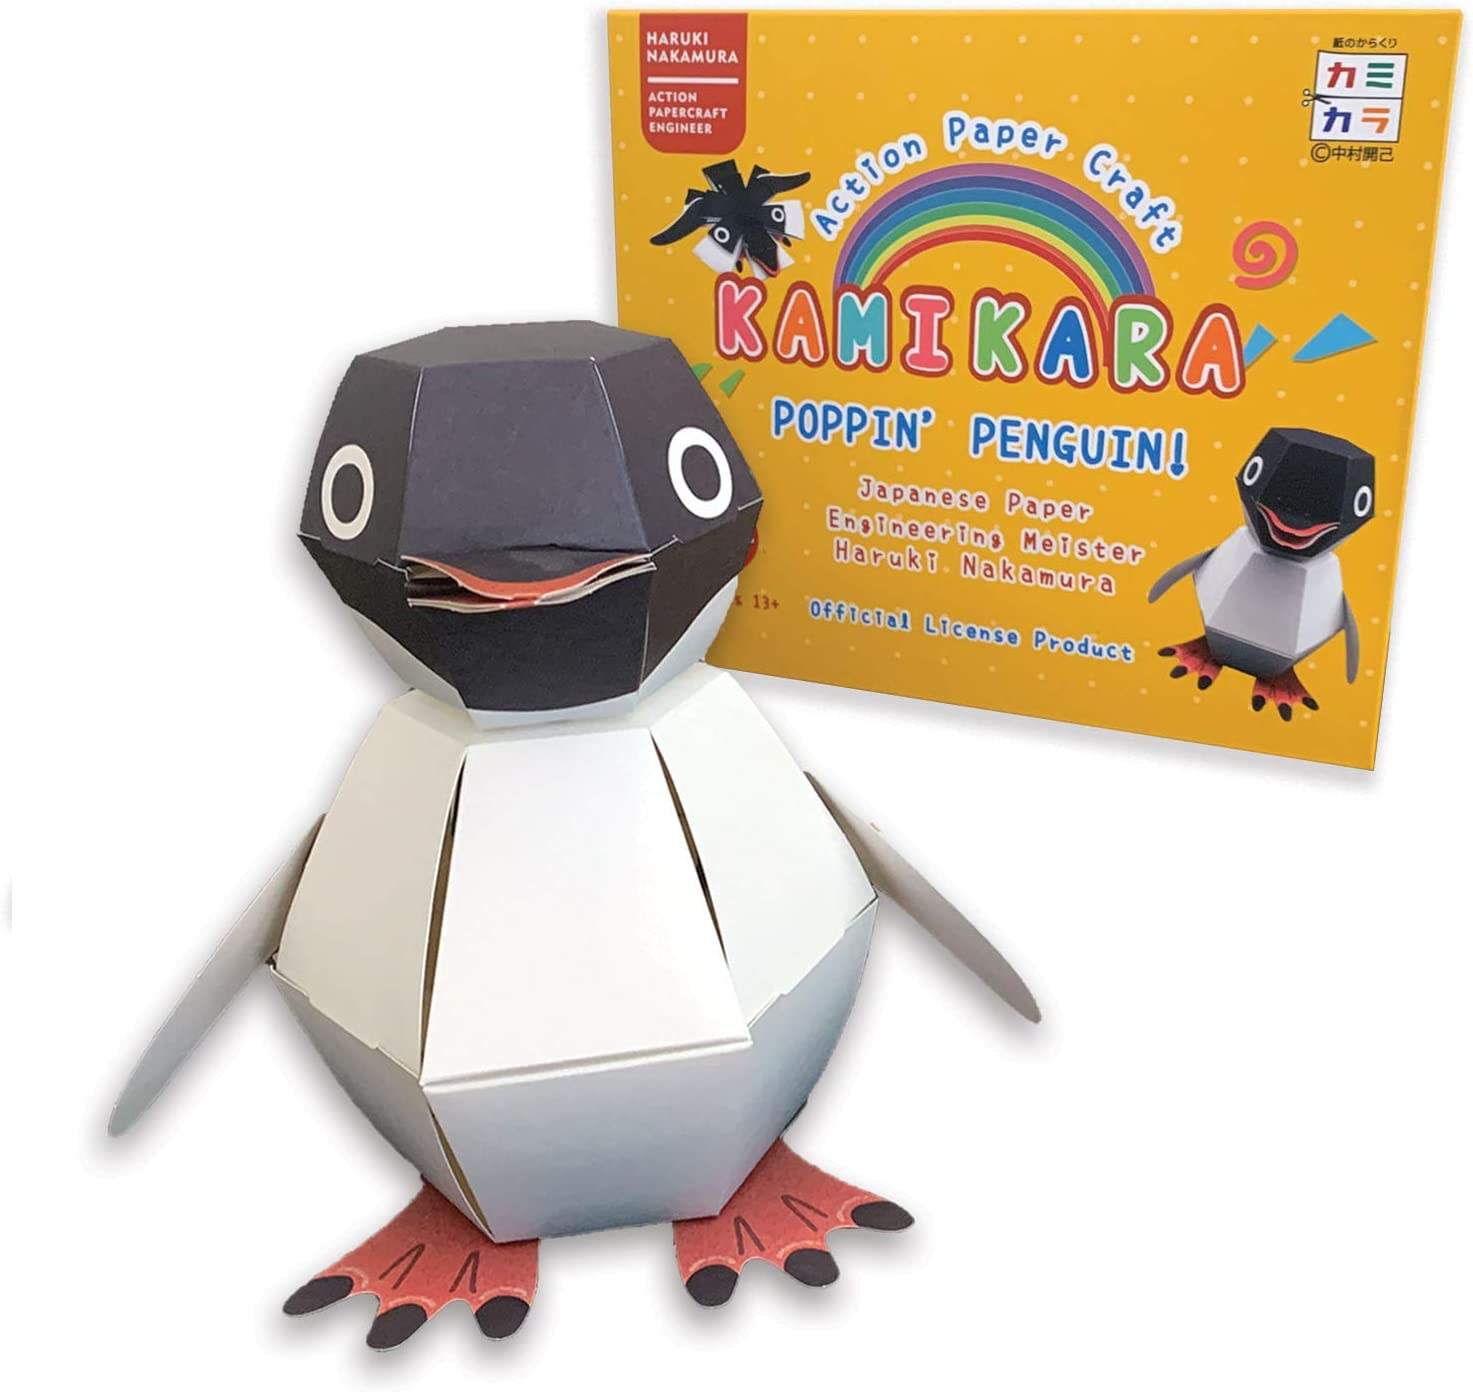 Magnote KAMIKARA Poppin' Penguin by Haruki Nakamura - Japanese Karakuri Circus Origami Paper Craft Kit for Kids and Adults